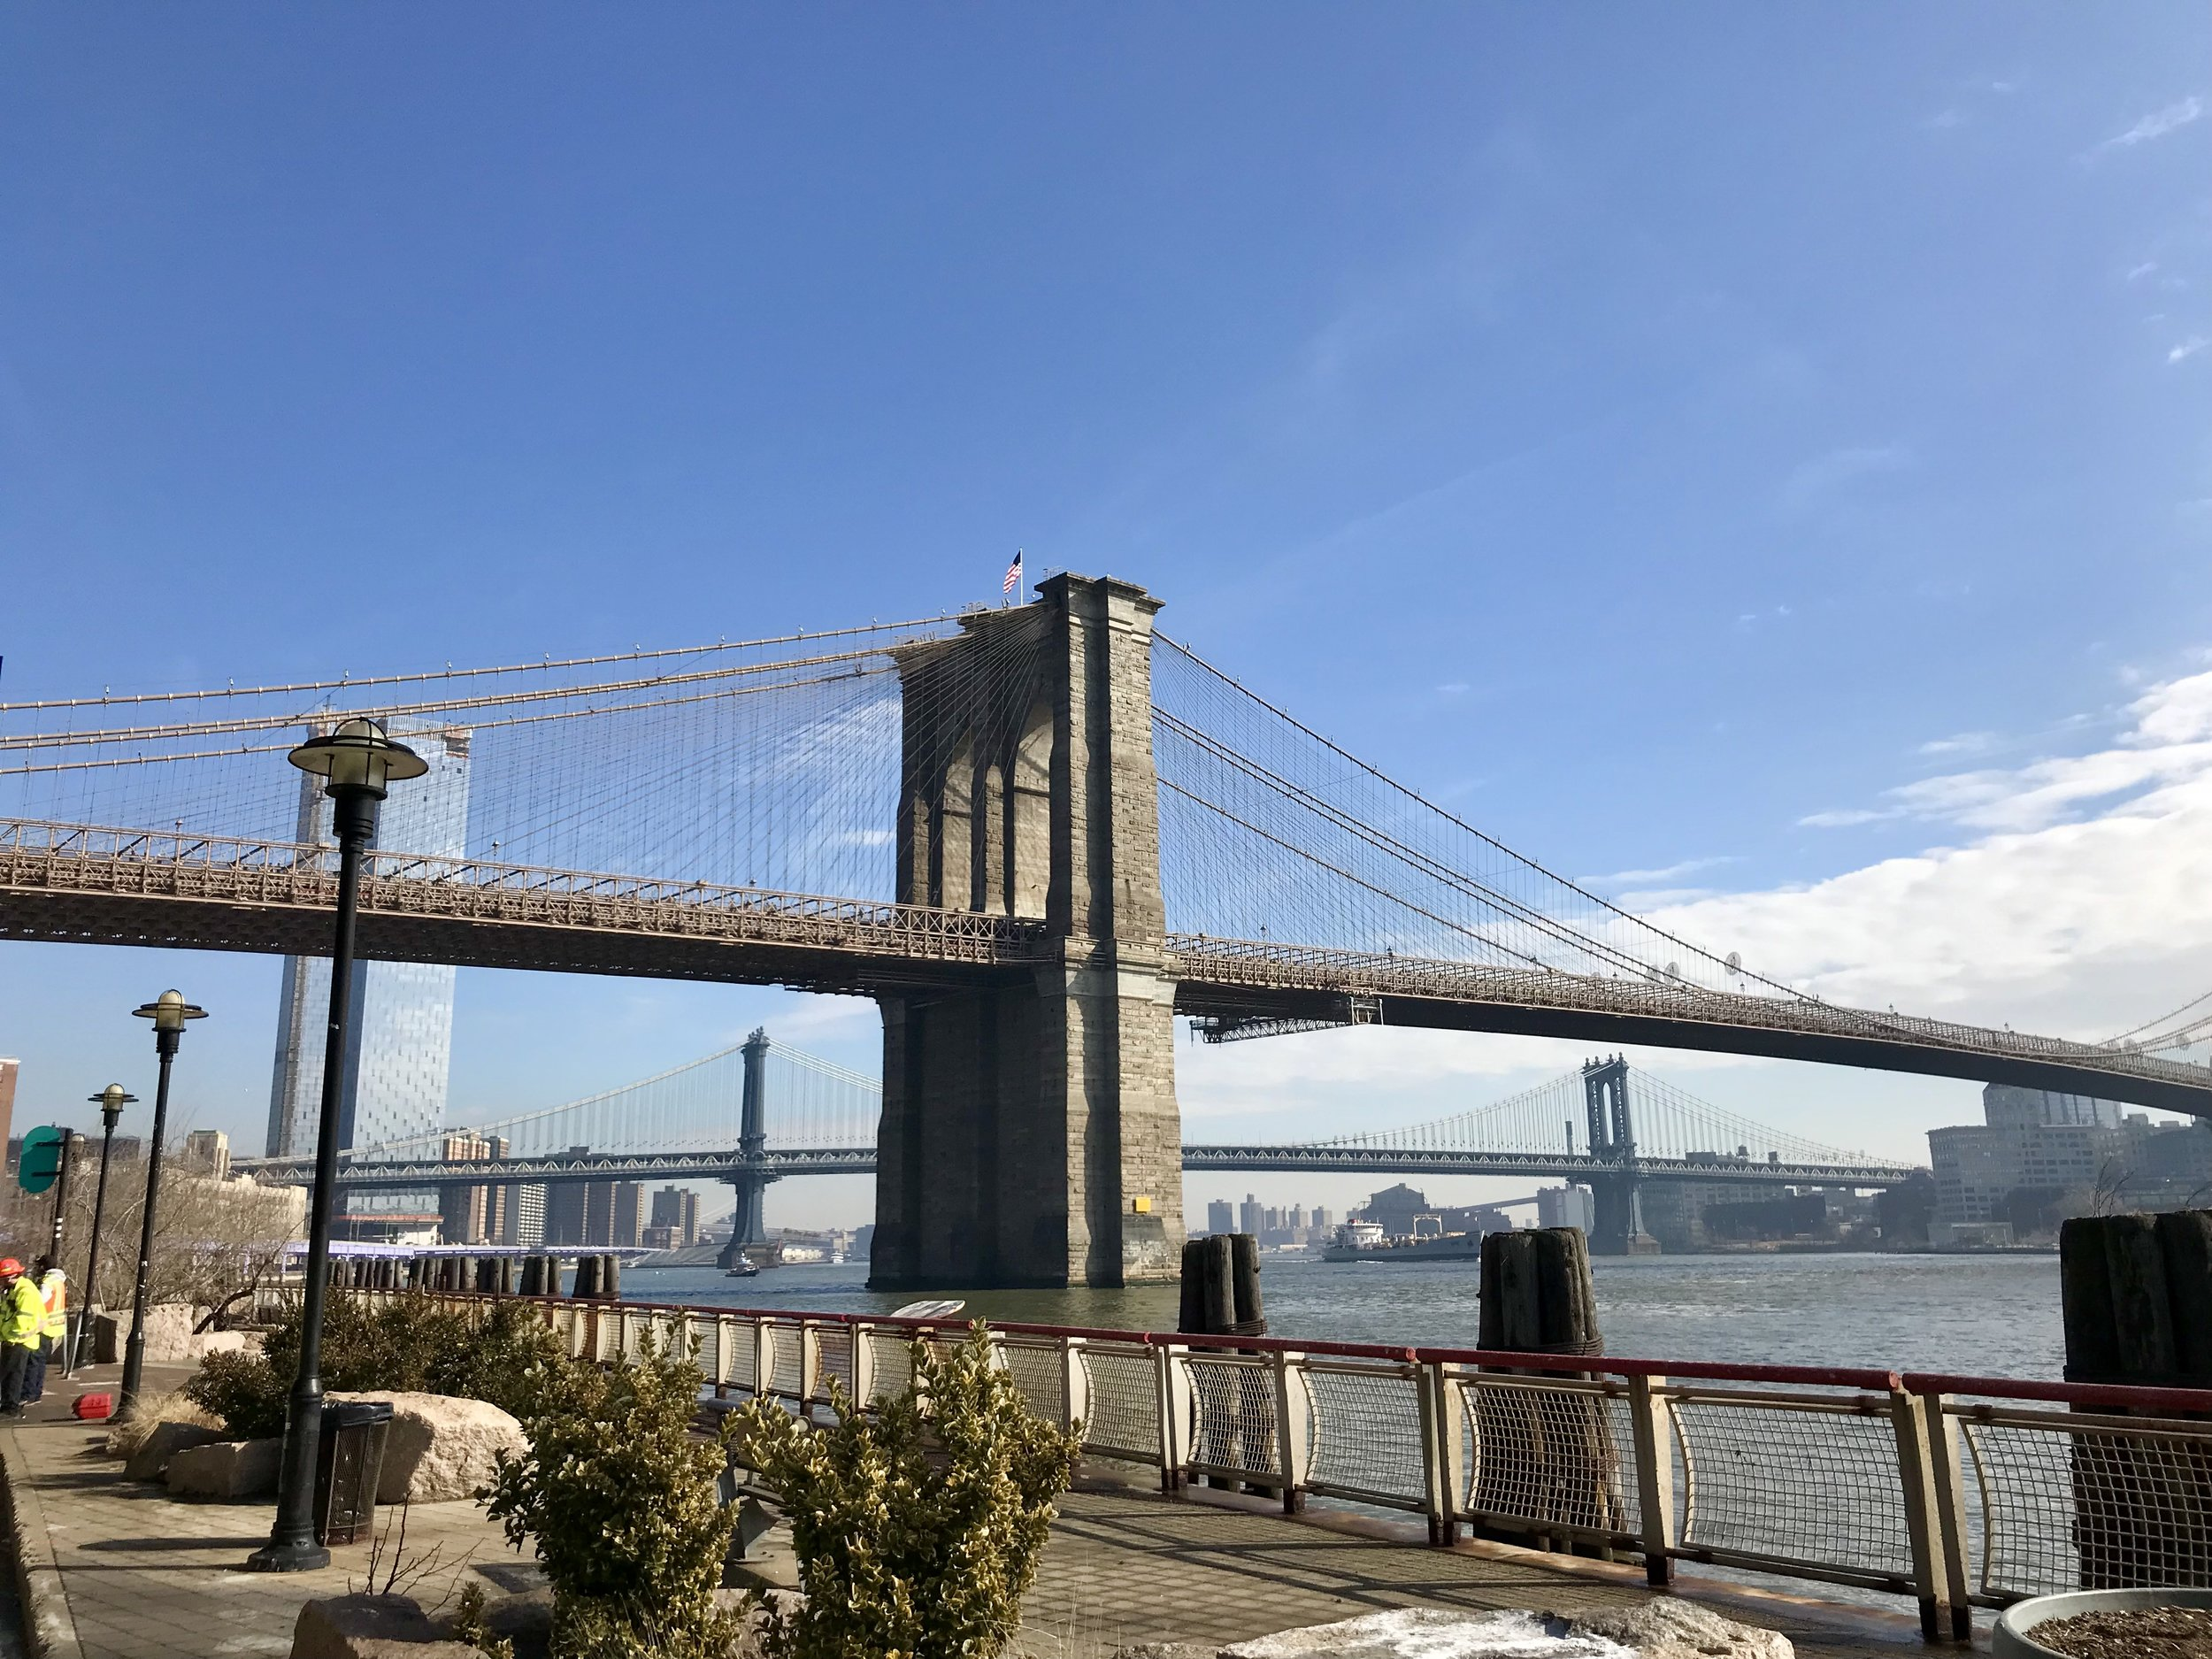 I took this photo of the Brooklyn Bridge in southern Manhattan.